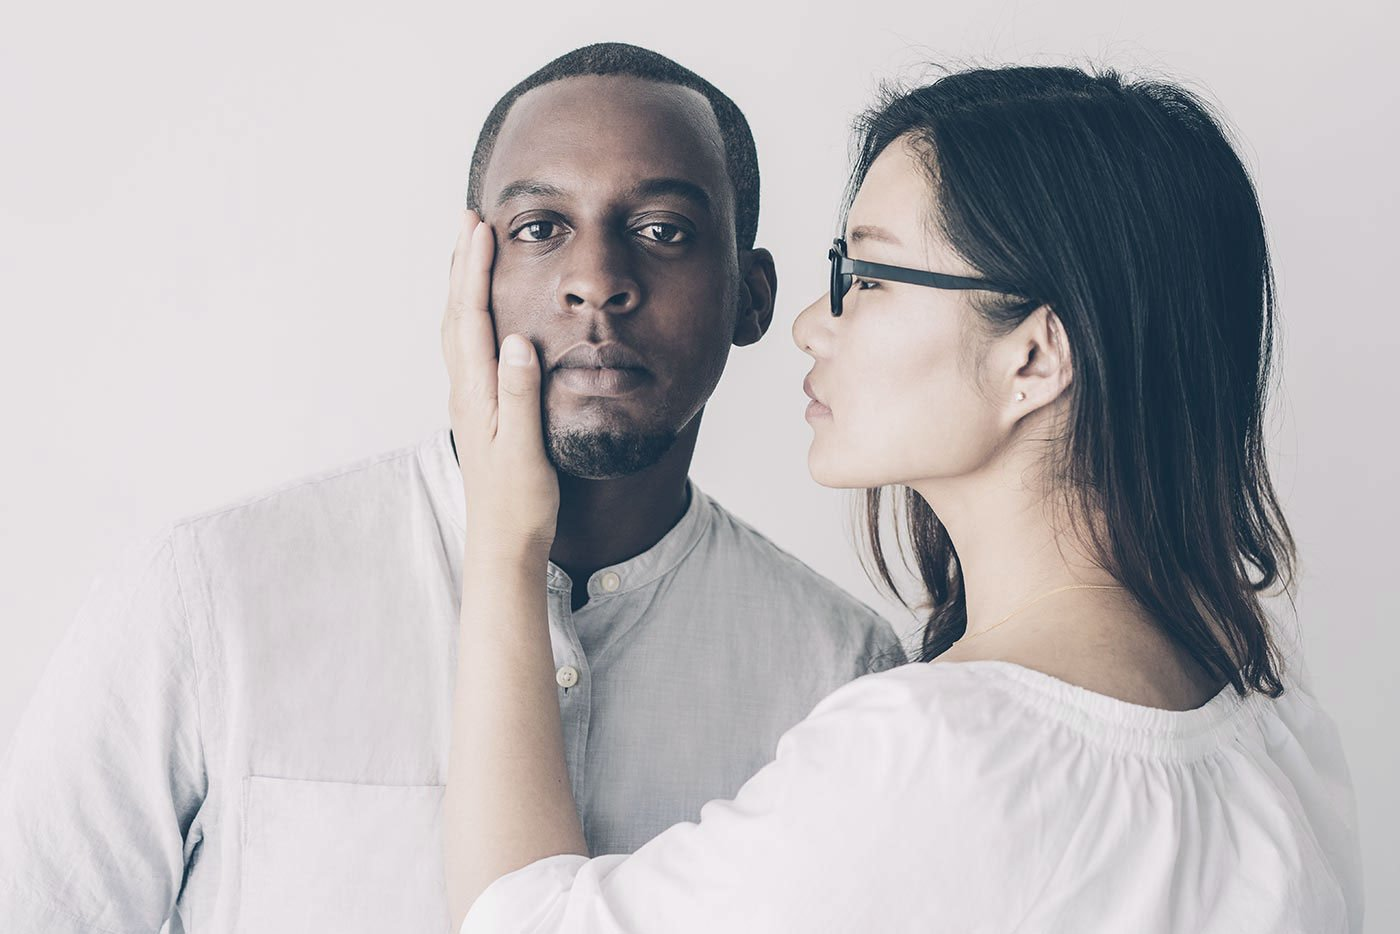 Serious Asian woman touching cheek of African boyfriend looking at camera